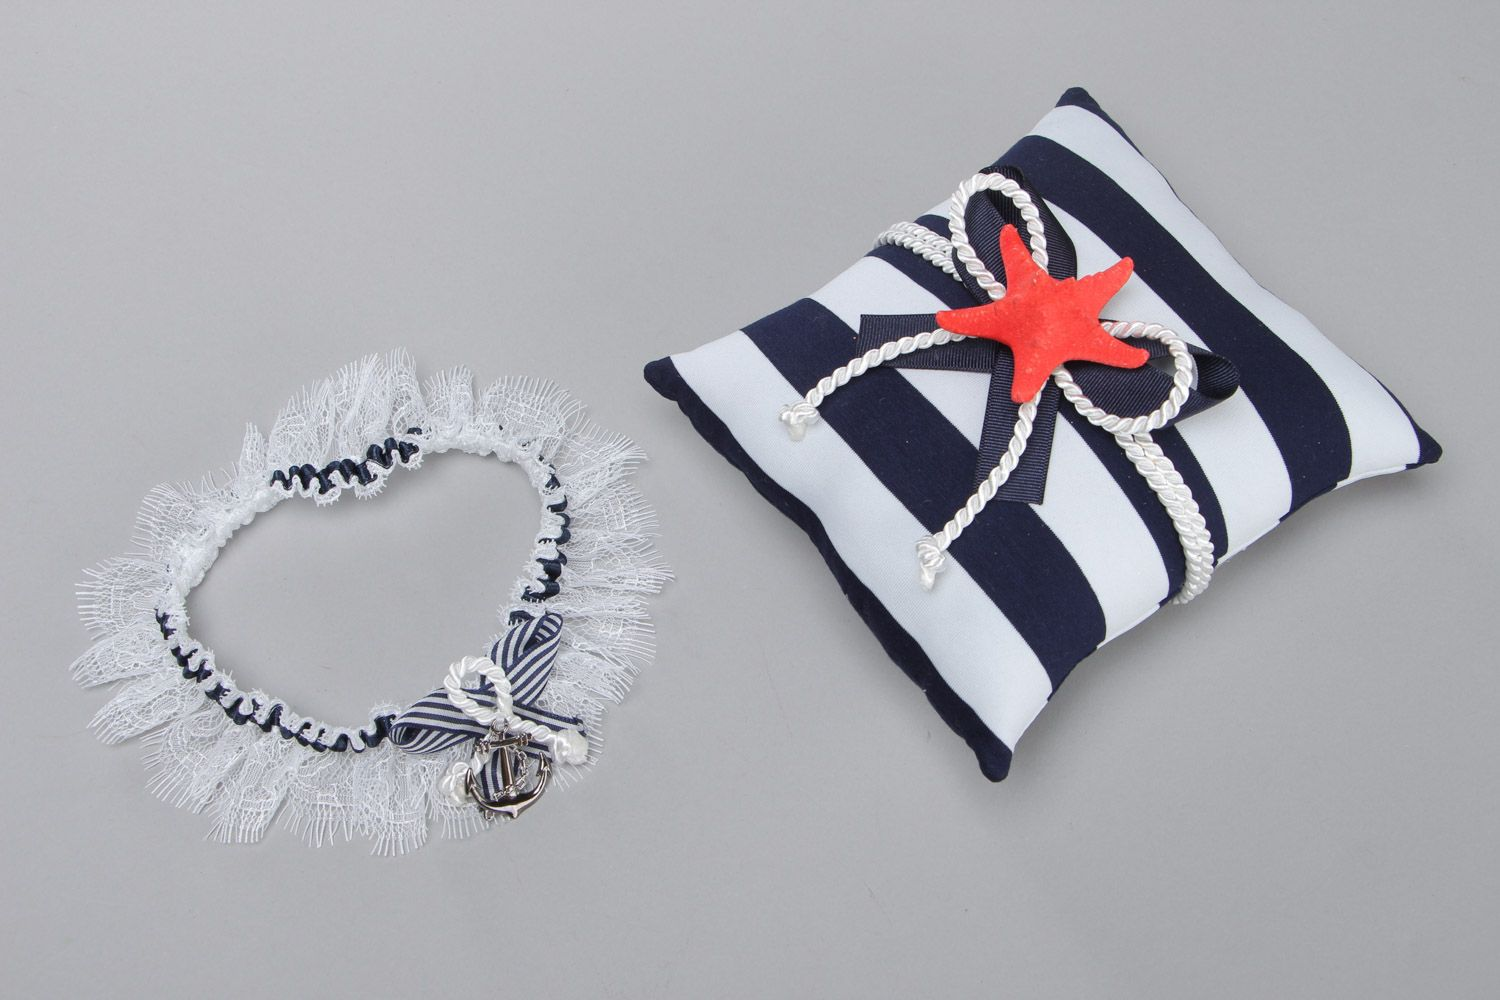 wedding accessories Set of handmade wedding accessories in marine style ring pillow and bridal garter - MADEheart.com